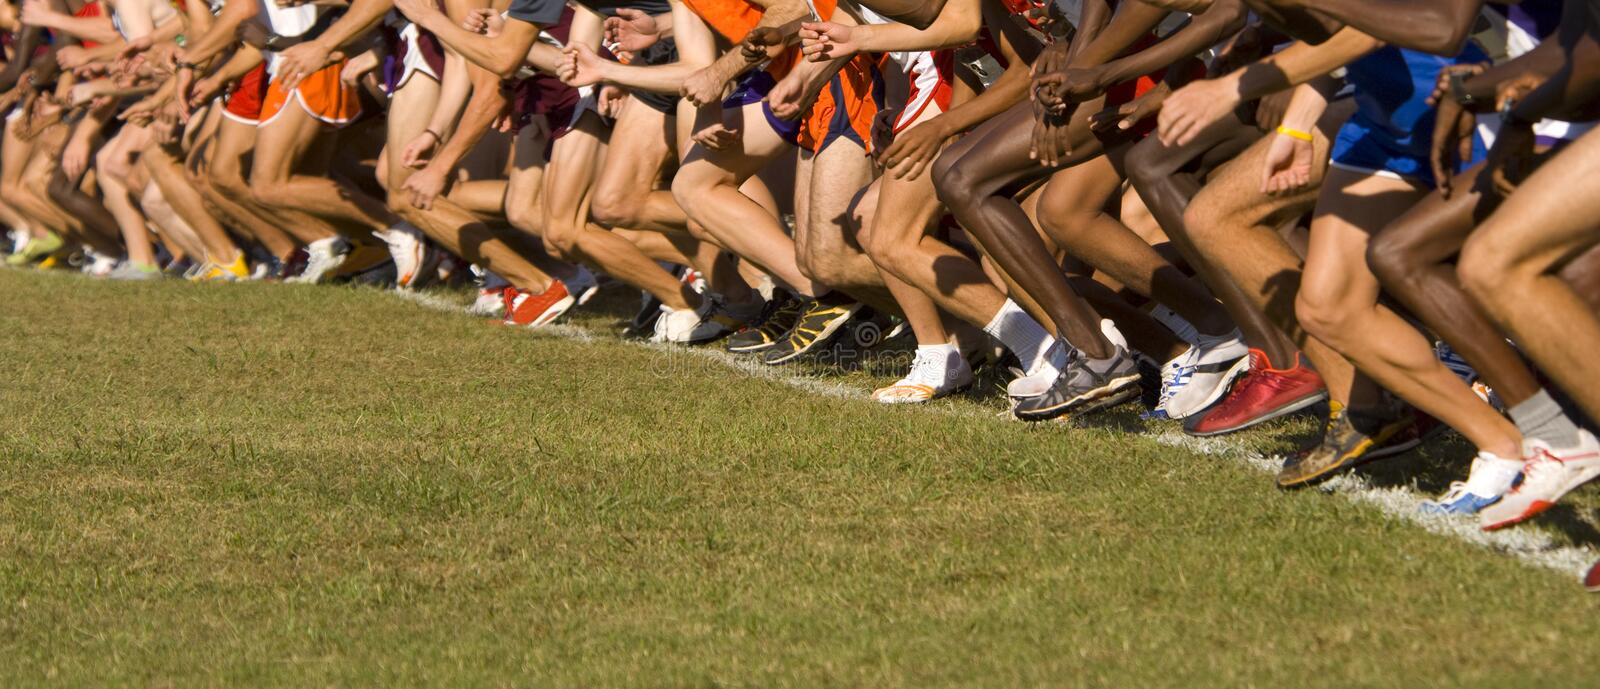 Download Race! stock photo. Image of competition, hands, athletes - 4509754